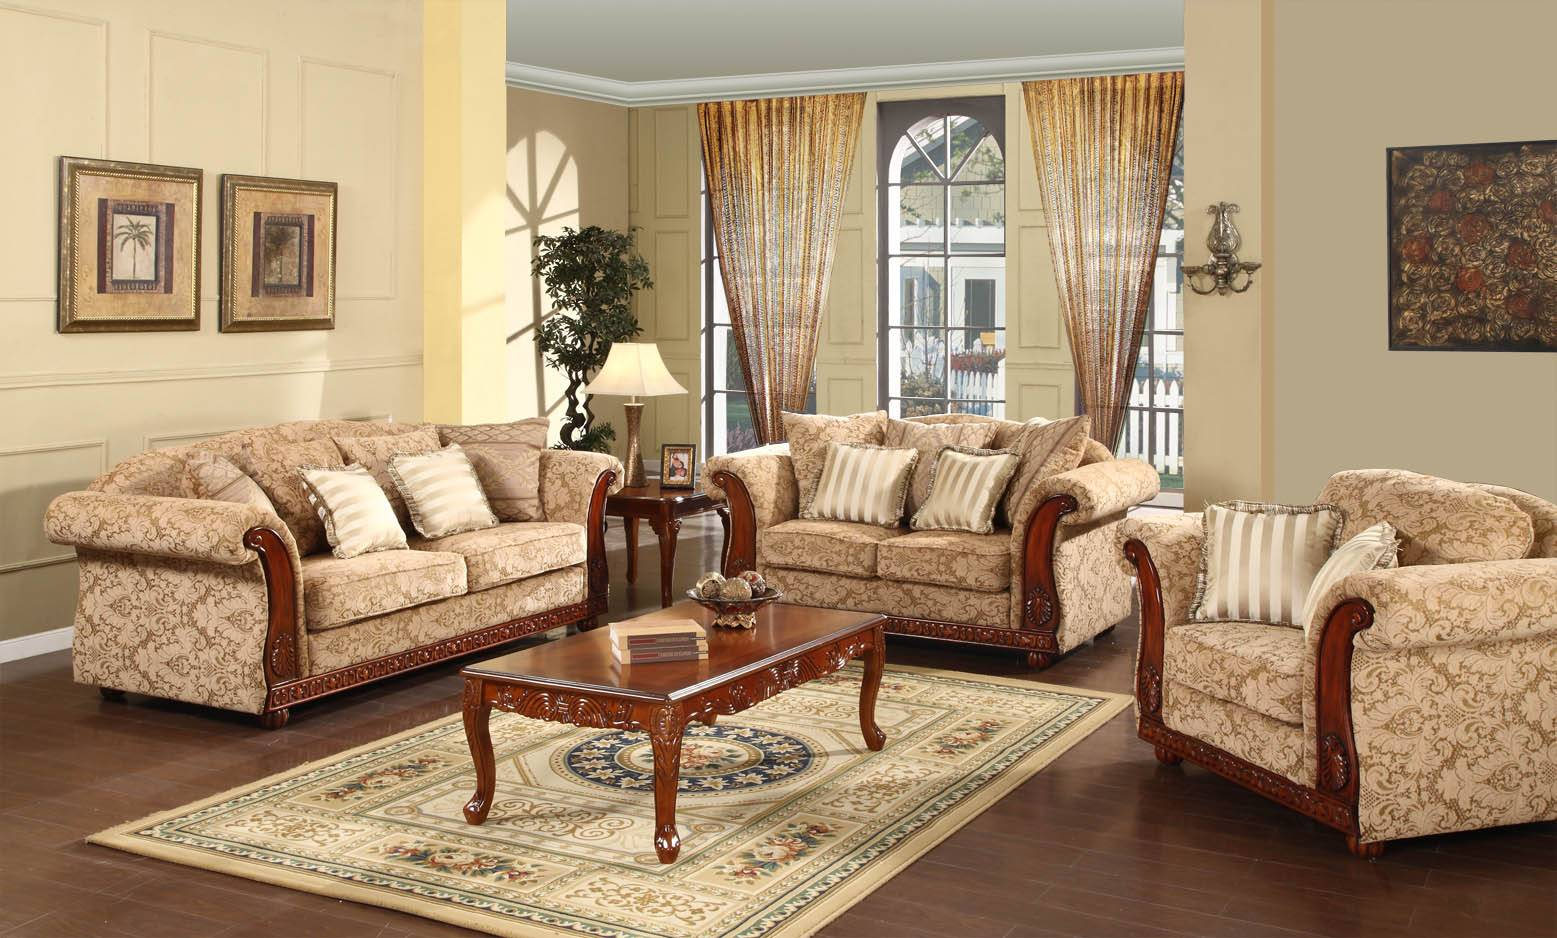 America style classic sofa for living room